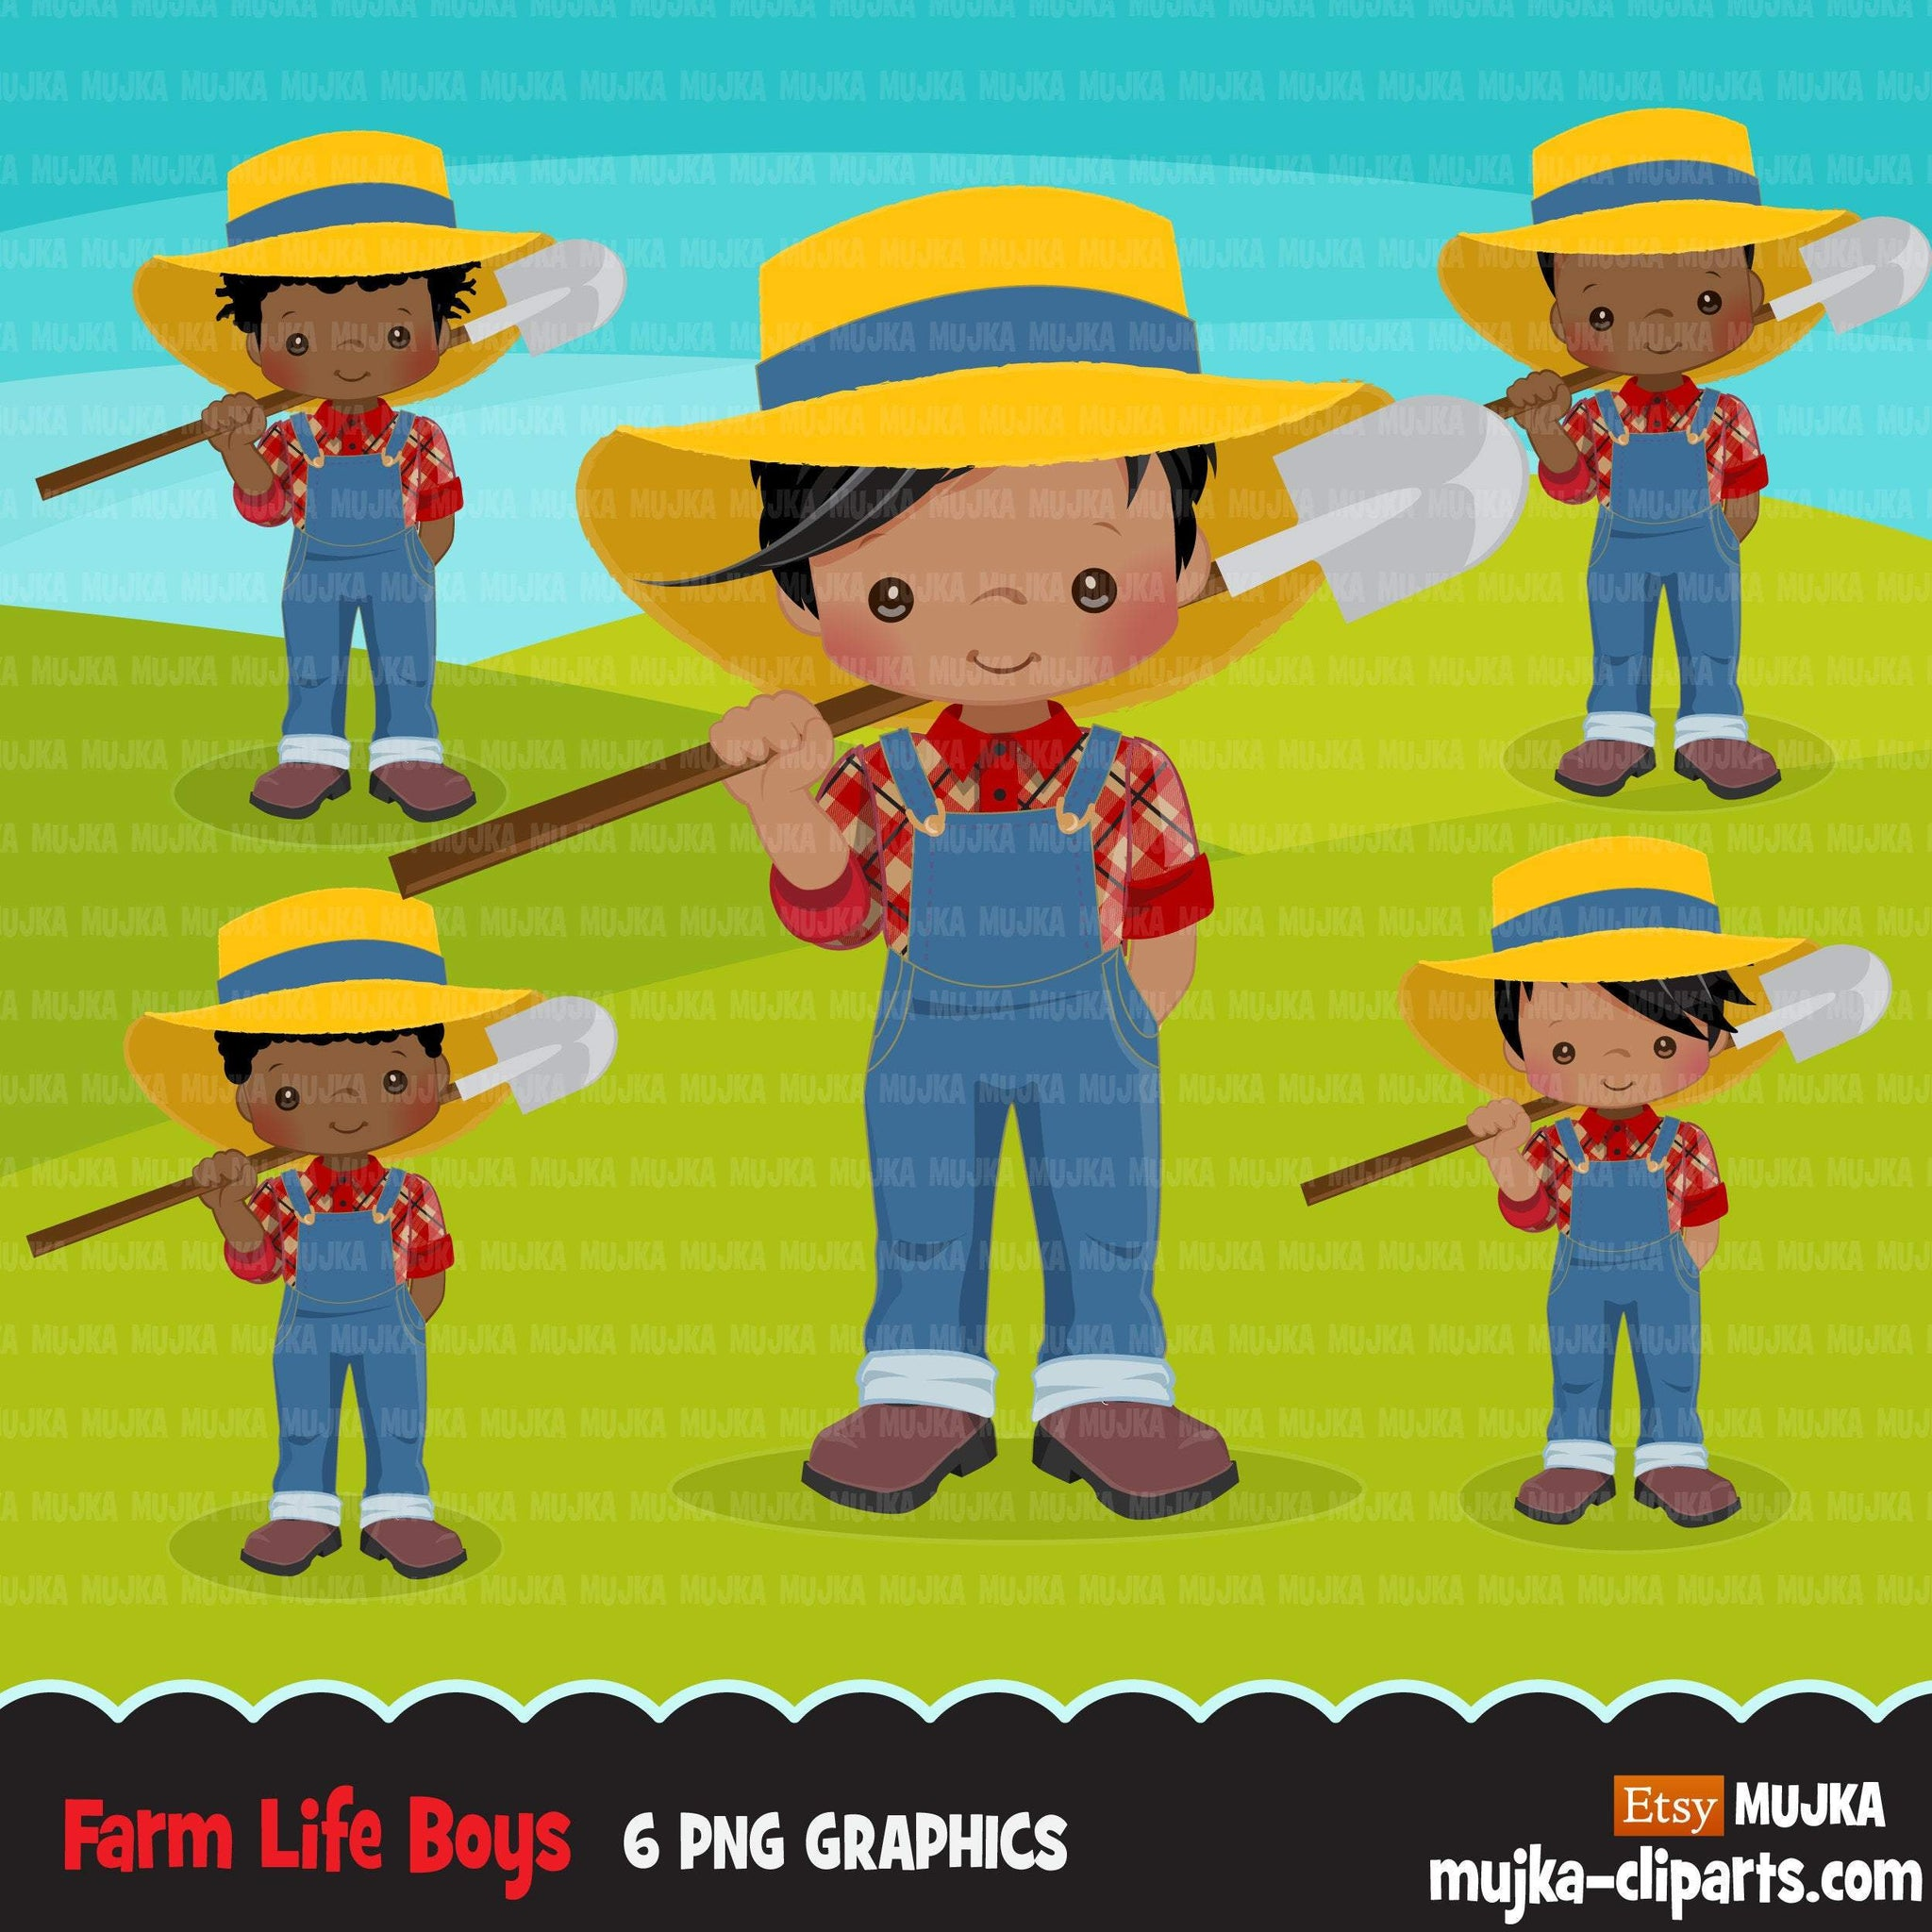 Afro black Farmer Boys clipart, farmer characters with shovel, farmer hat, country graphics, country boy with hat